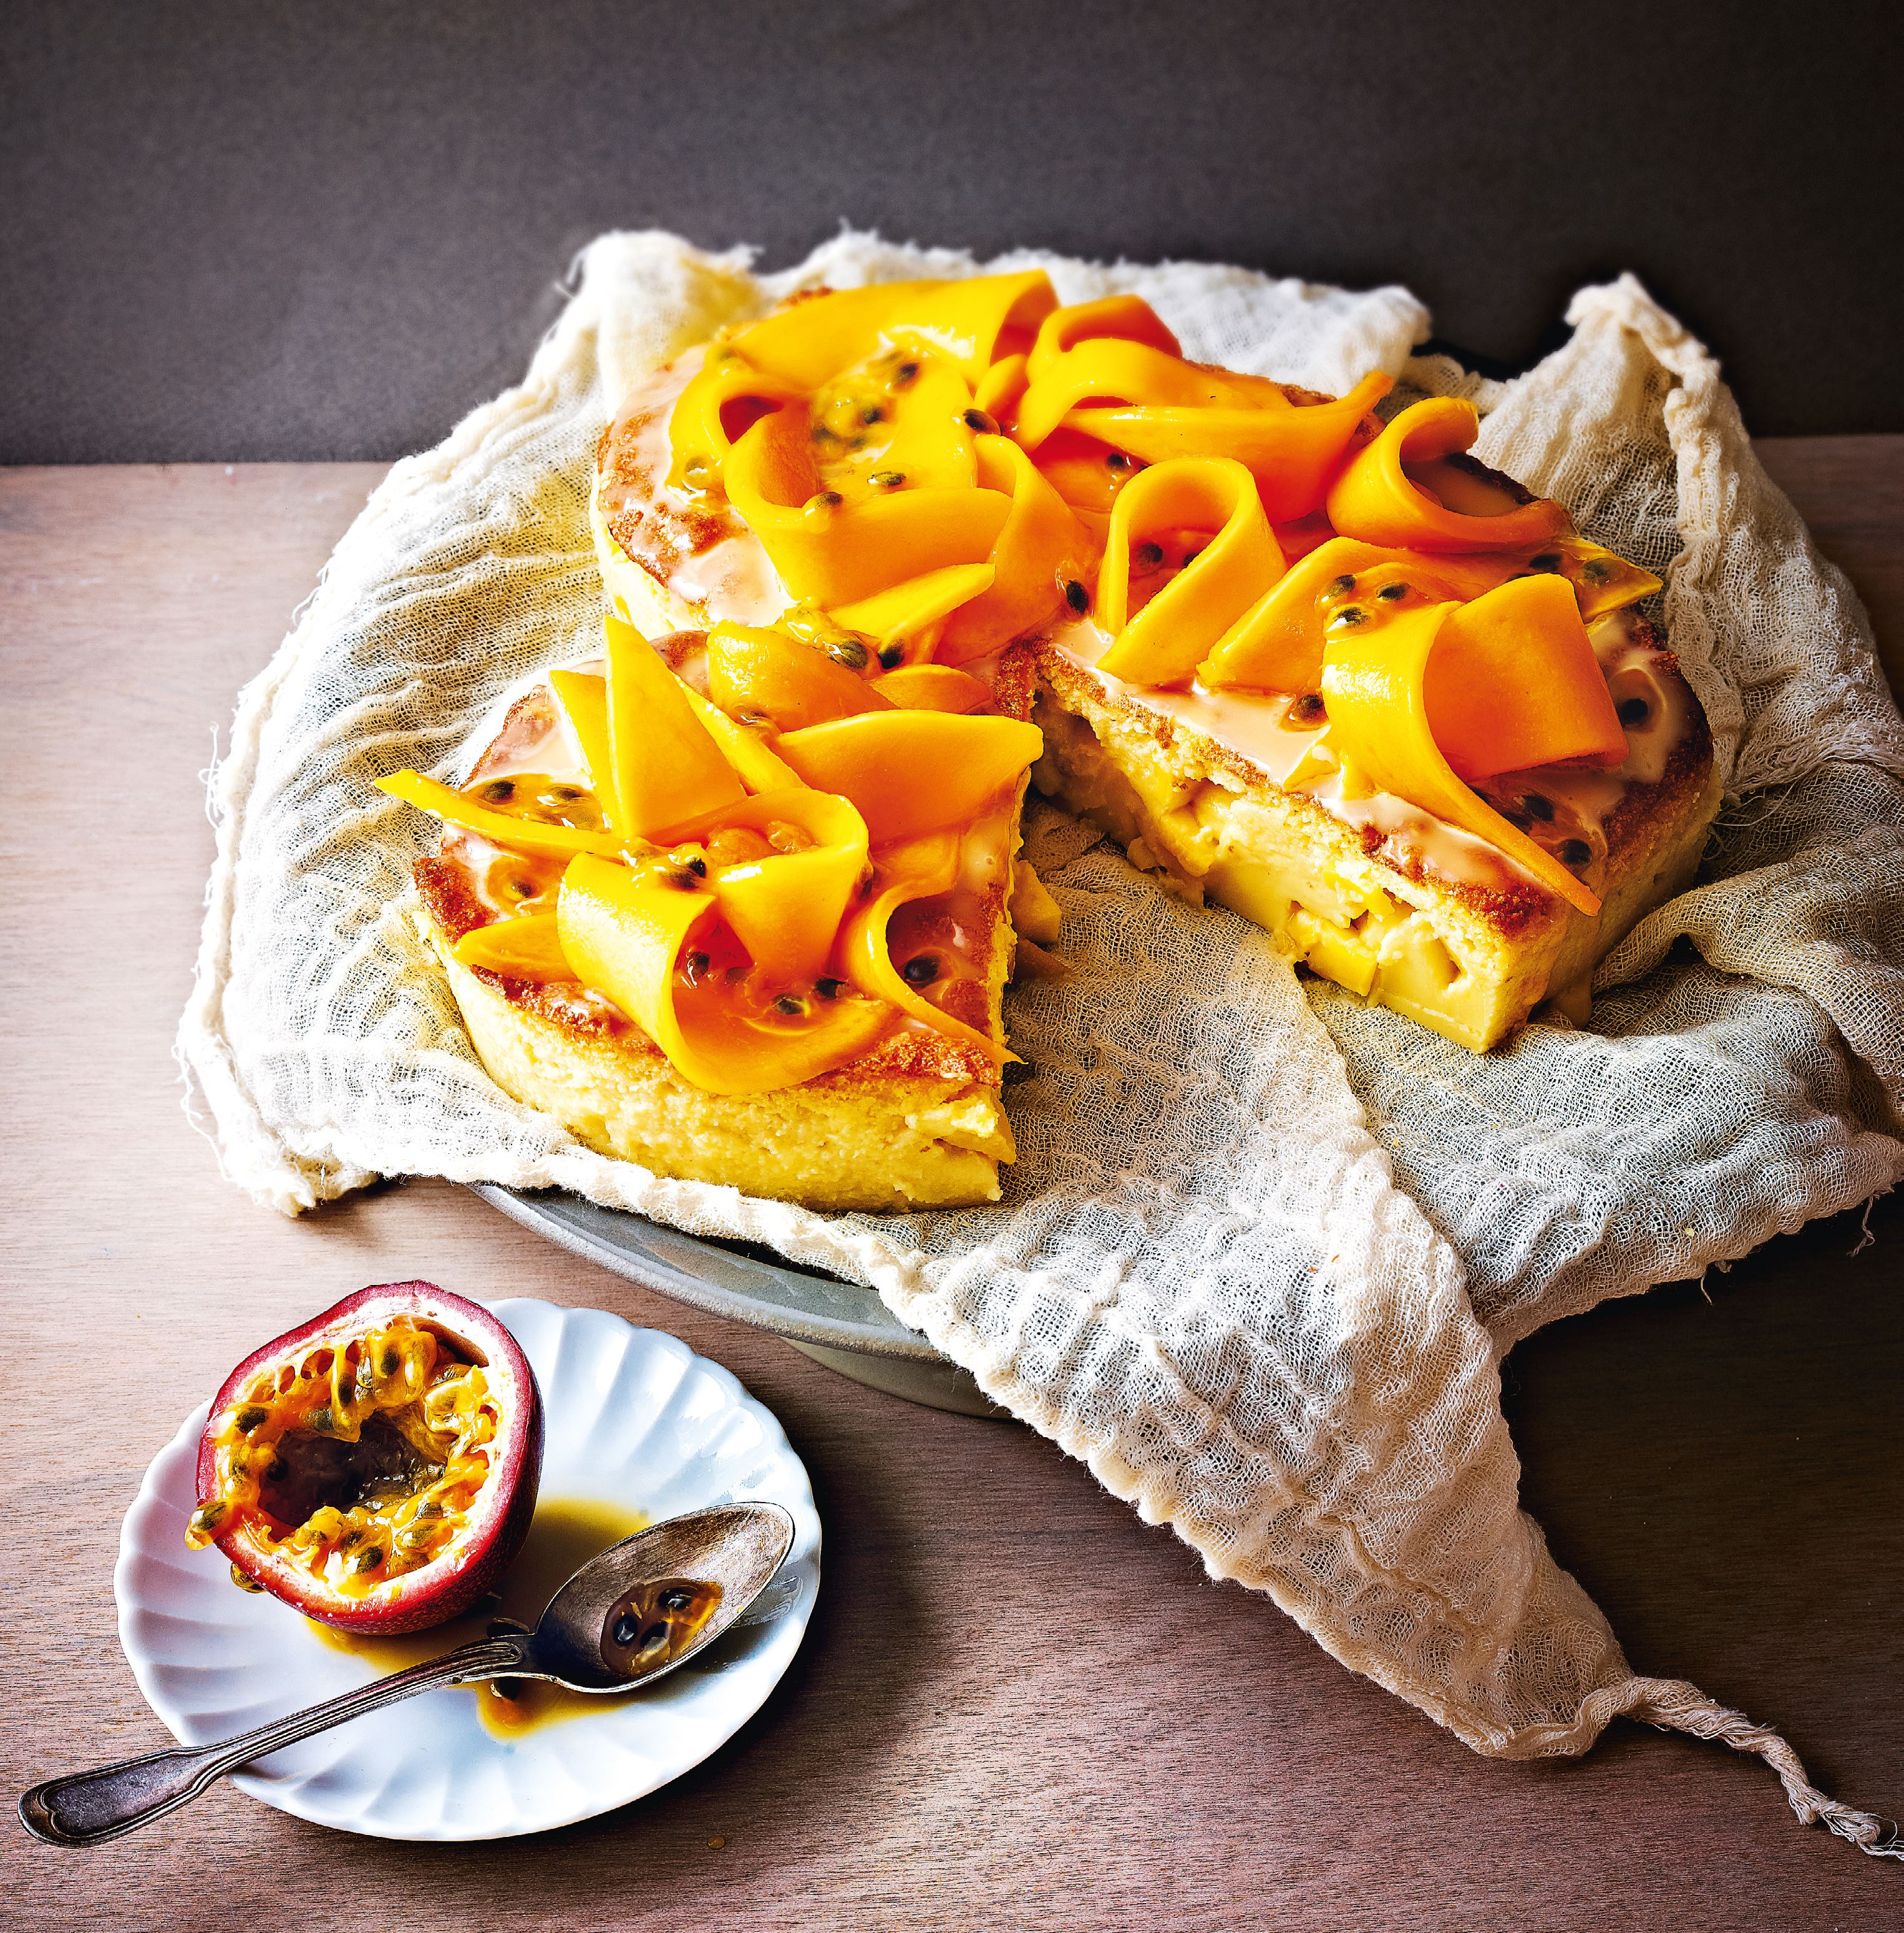 Mango and passion fruit heart cake